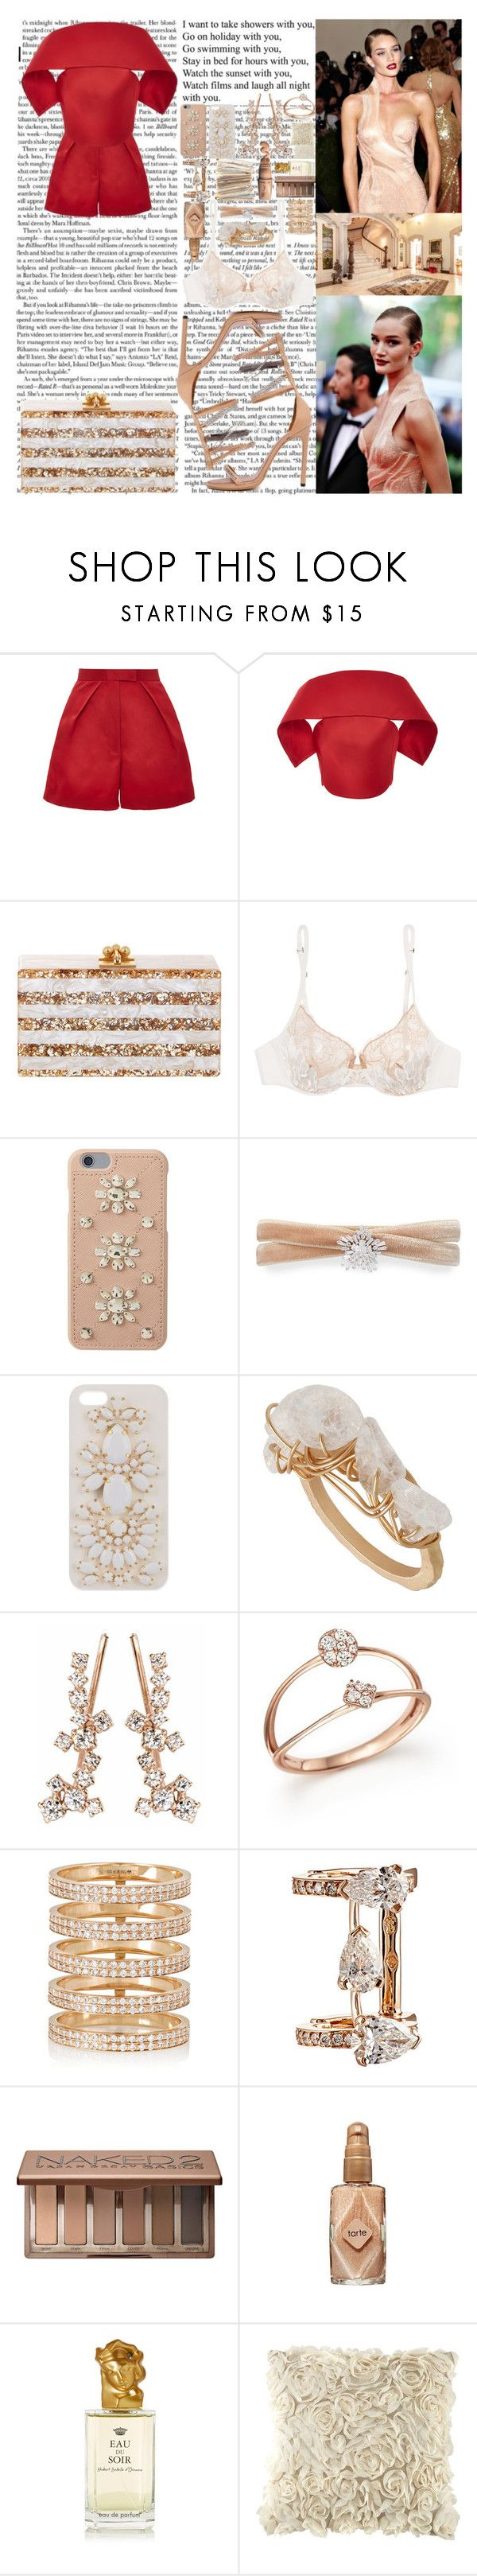 """""""And all of this stuff will break me Don't break me Hold on All of this stuff will break me Why you have to treat me like that? It's taking all I have not to look back When you gonna grow up and look past Everybody else has flaws,"""" by labelsoflove ❤ liked on Polyvore featuring Zac Posen, Christian Louboutin, La Perla, MICHAEL Michael Kors, Fallon, Skinnydip, Afew Jewels, Bloomingdale's, Repossi and Urban Decay"""